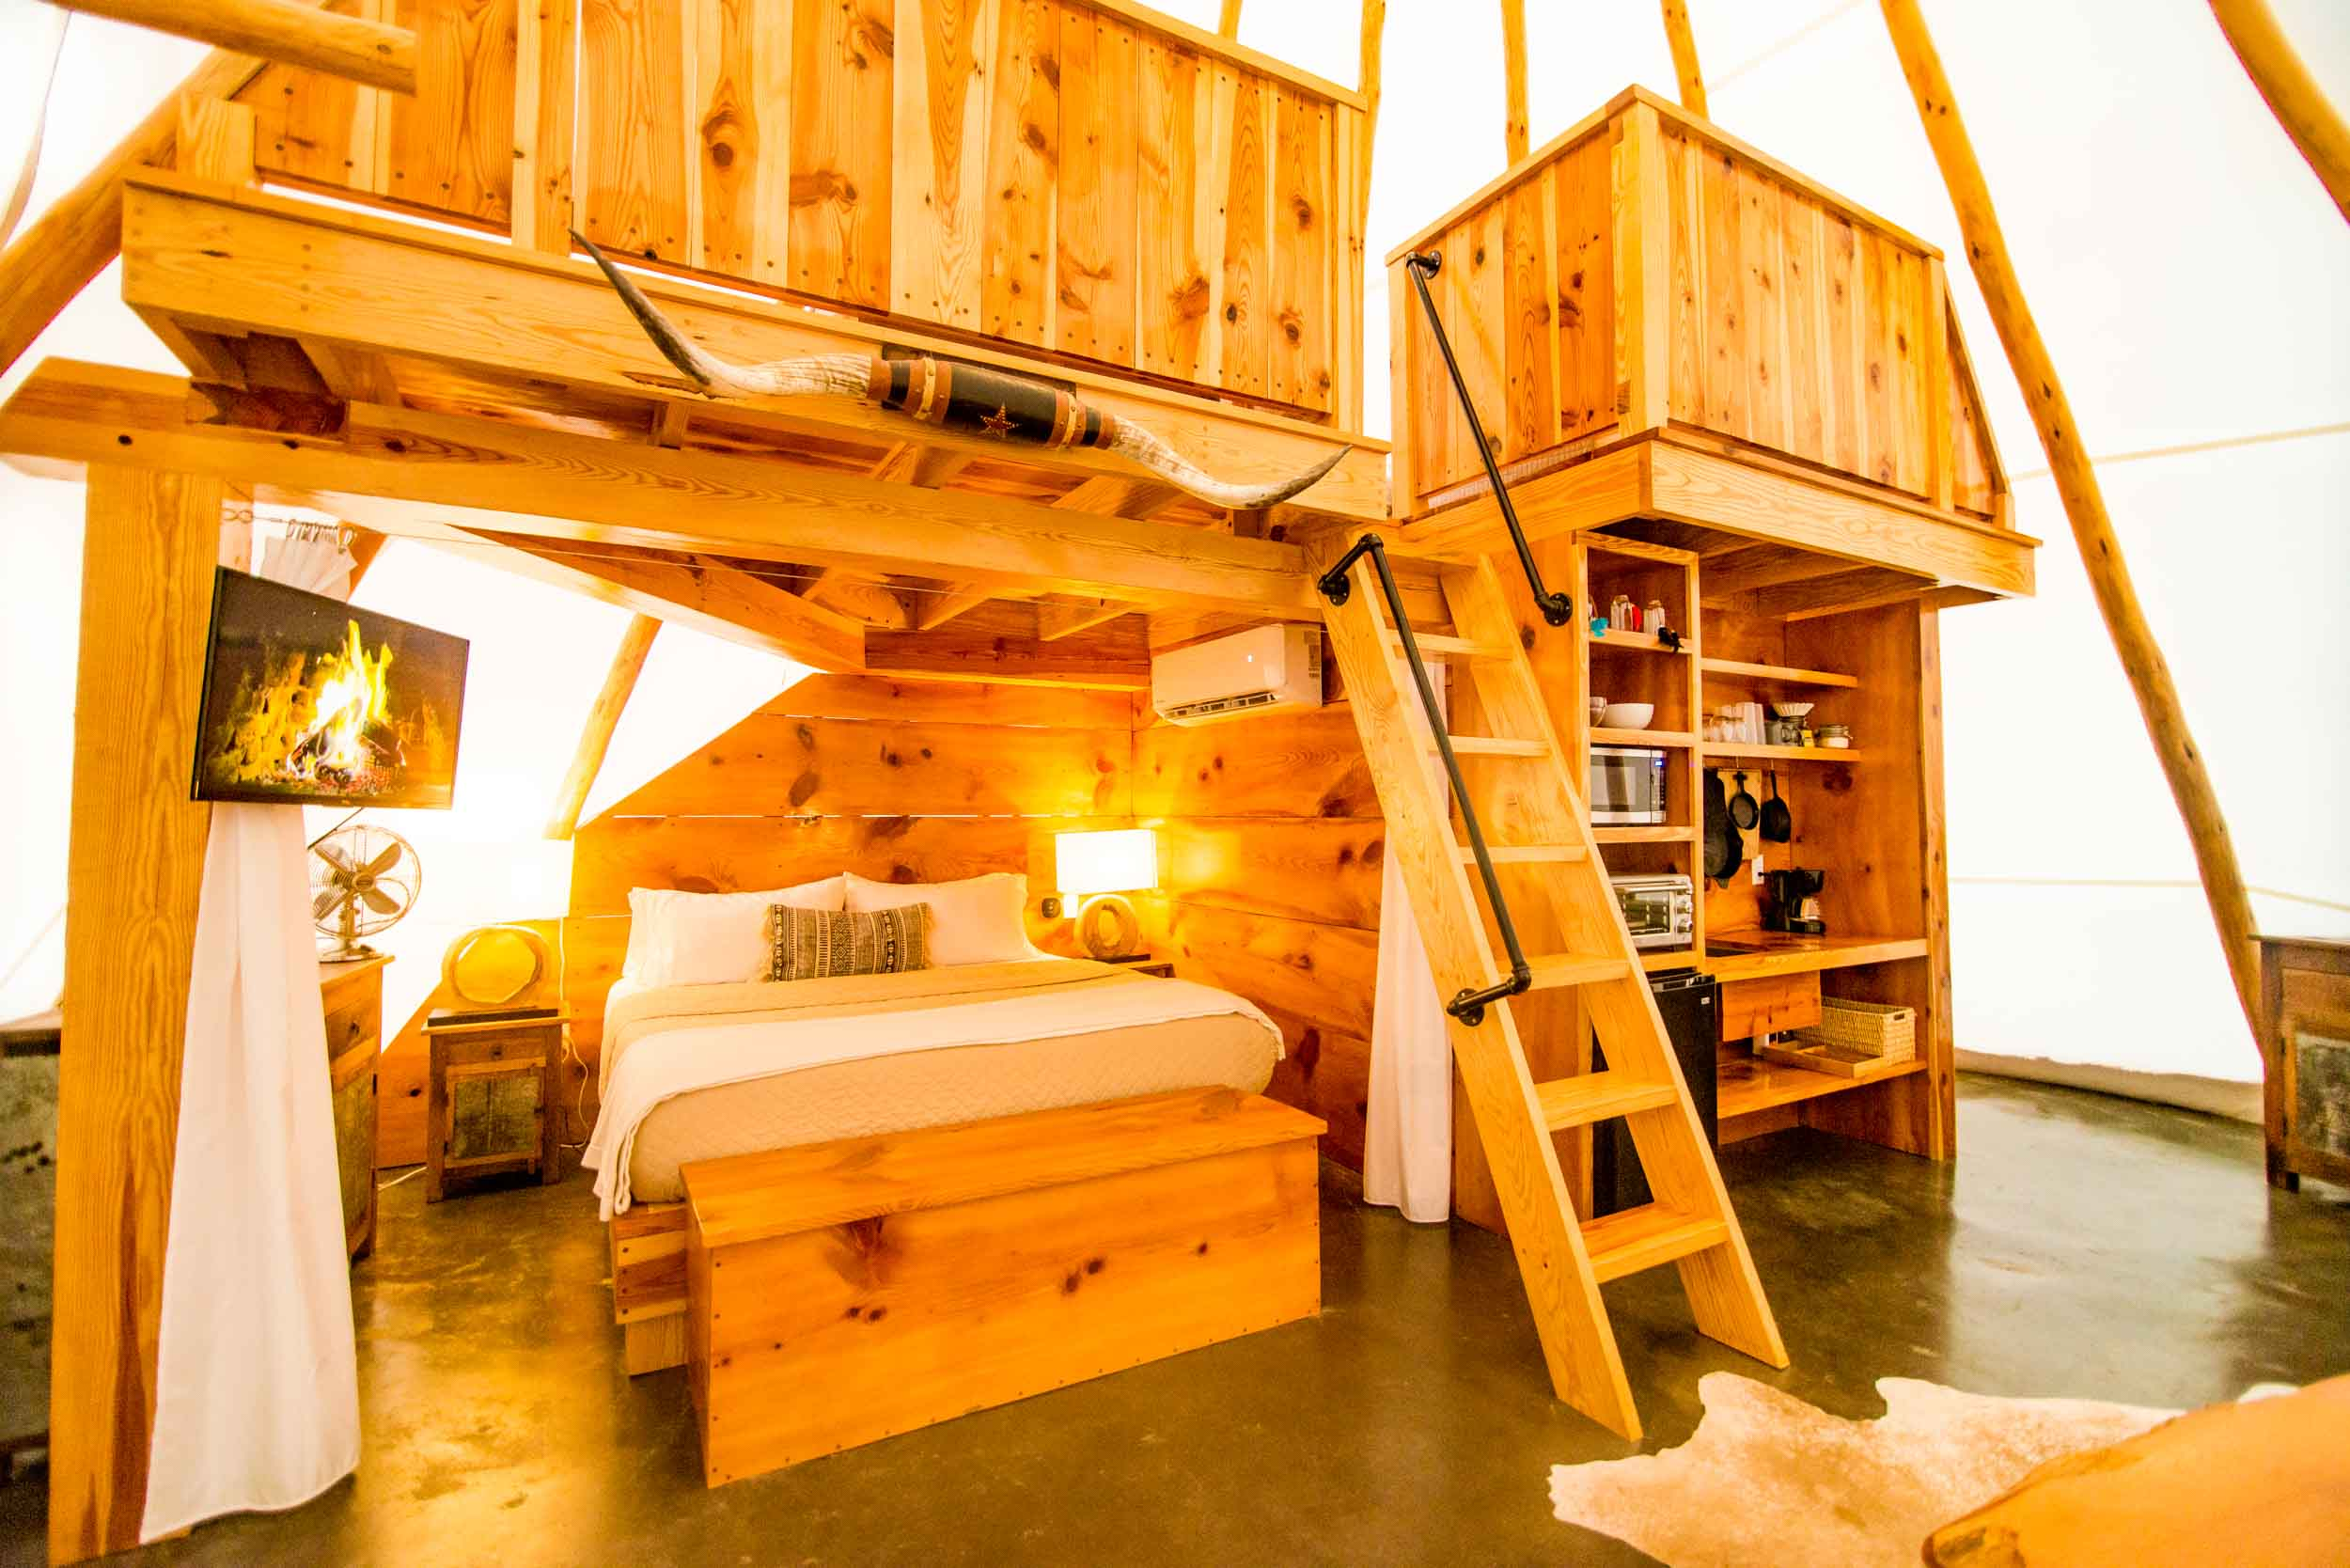 architecture+photographer+tipis+interiors+photography+airbnb+photo-2.jpg